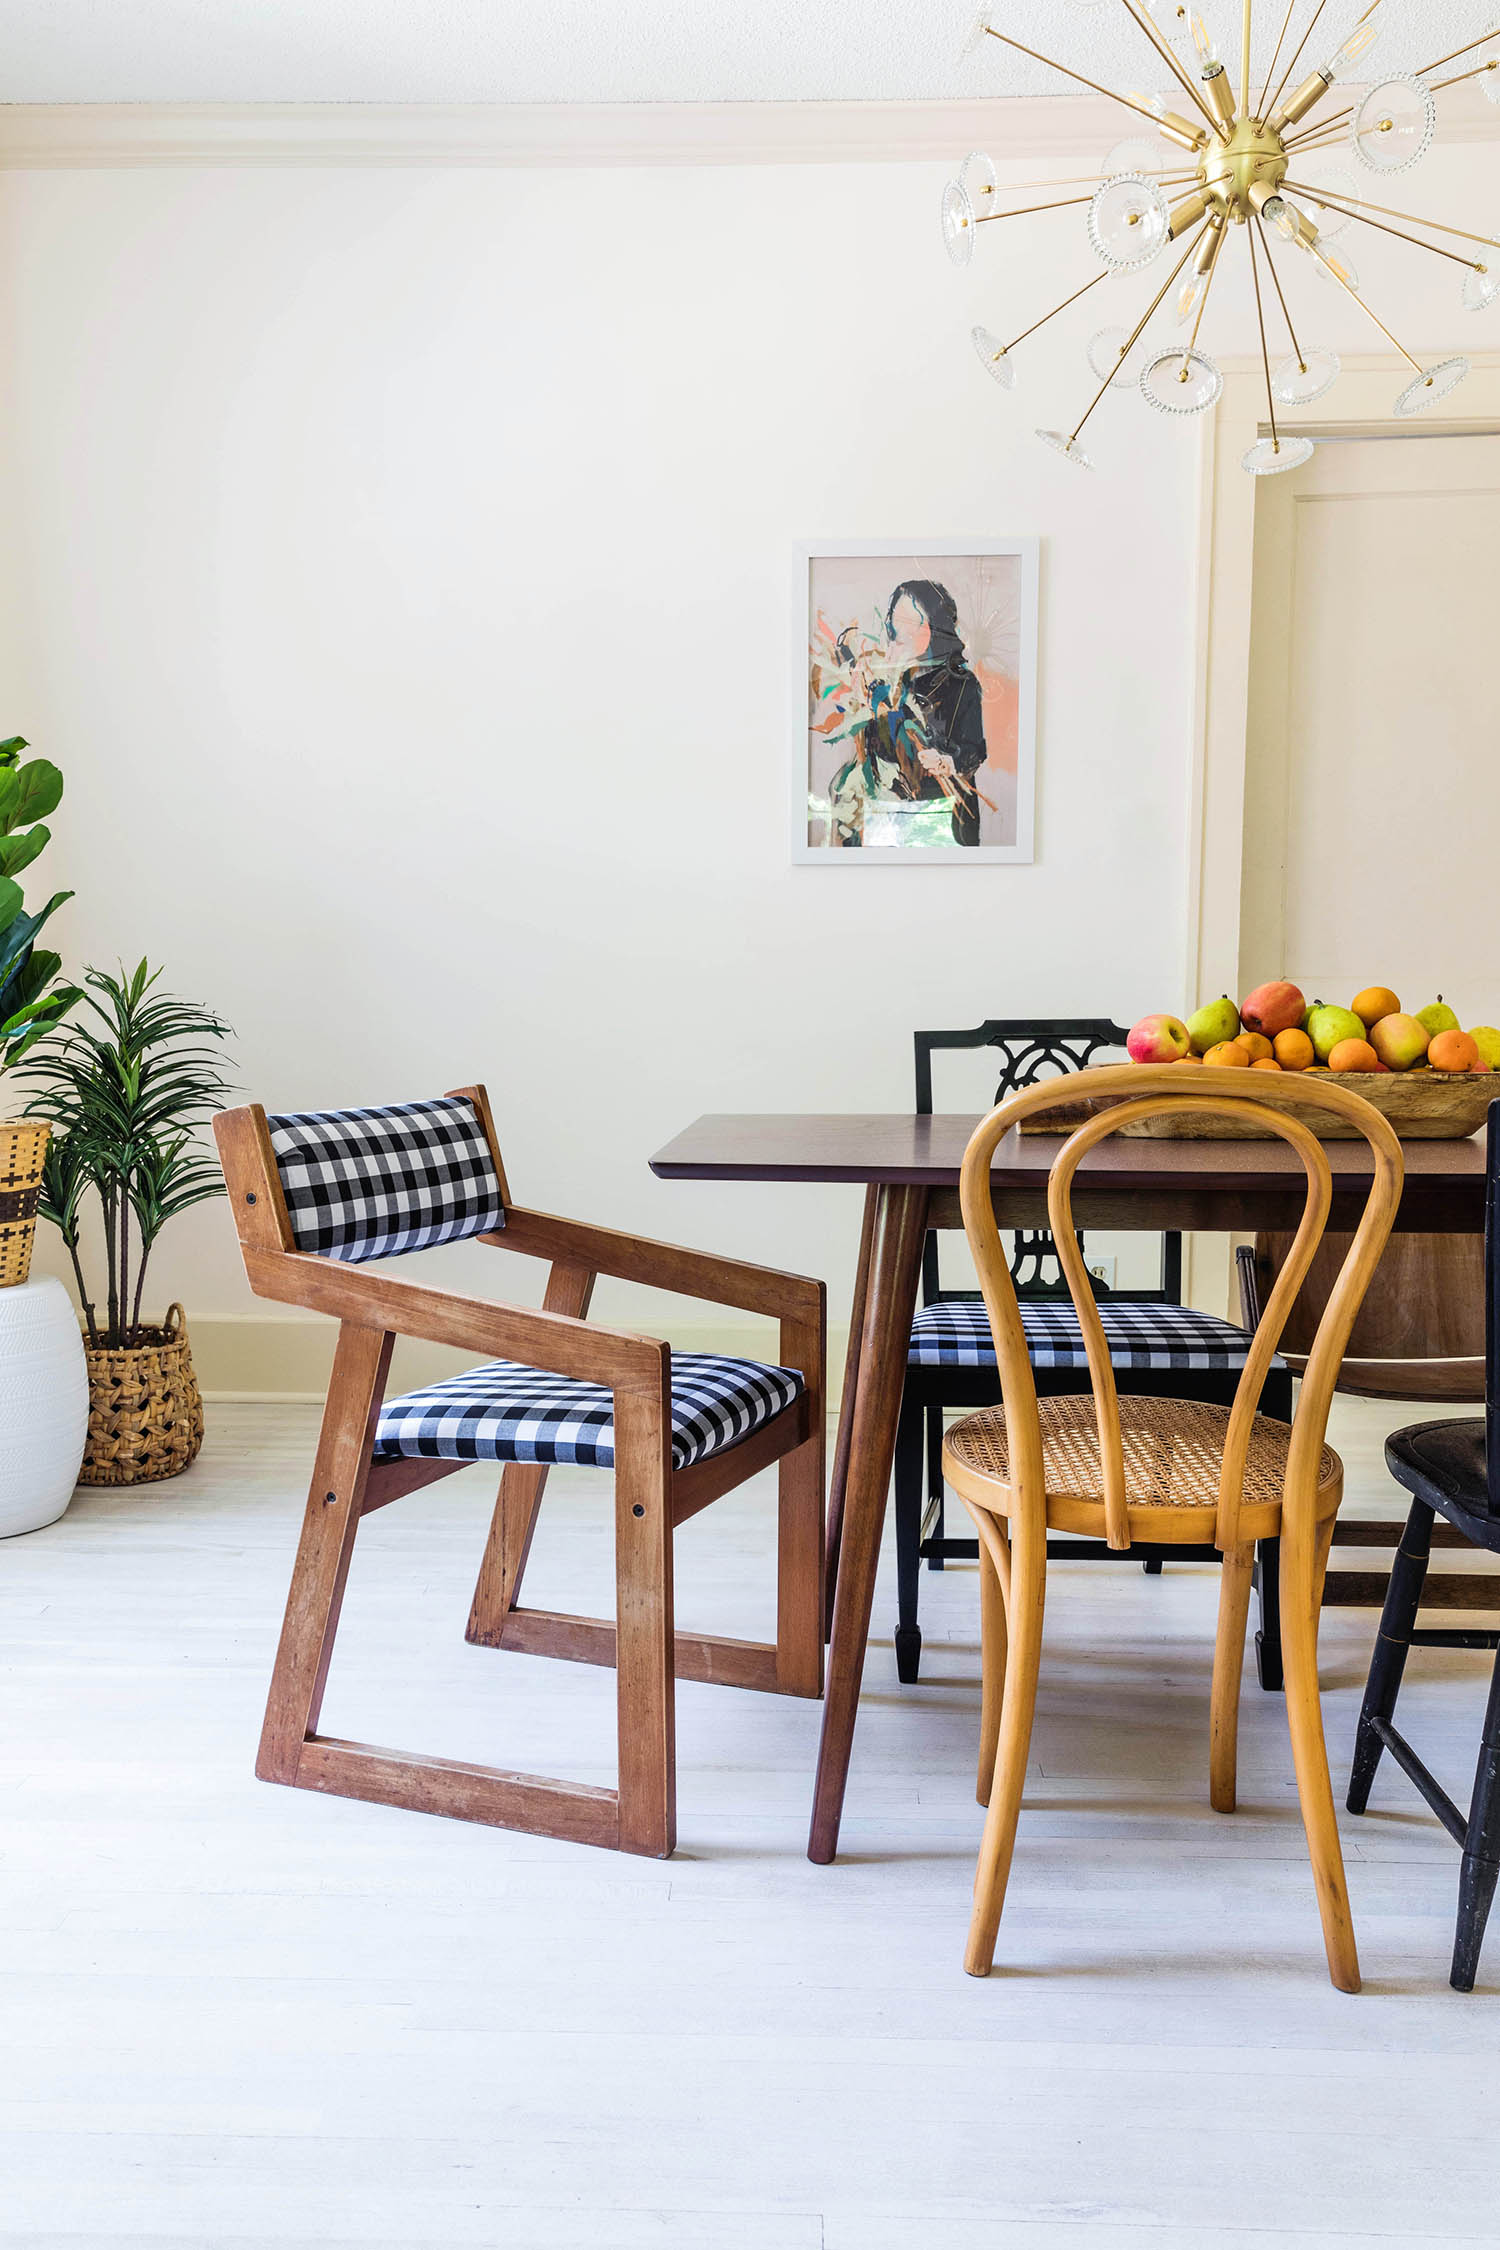 how do you reupholster dining room chairs | Tips to Reupholster Dining Chairs - A Beautiful Mess